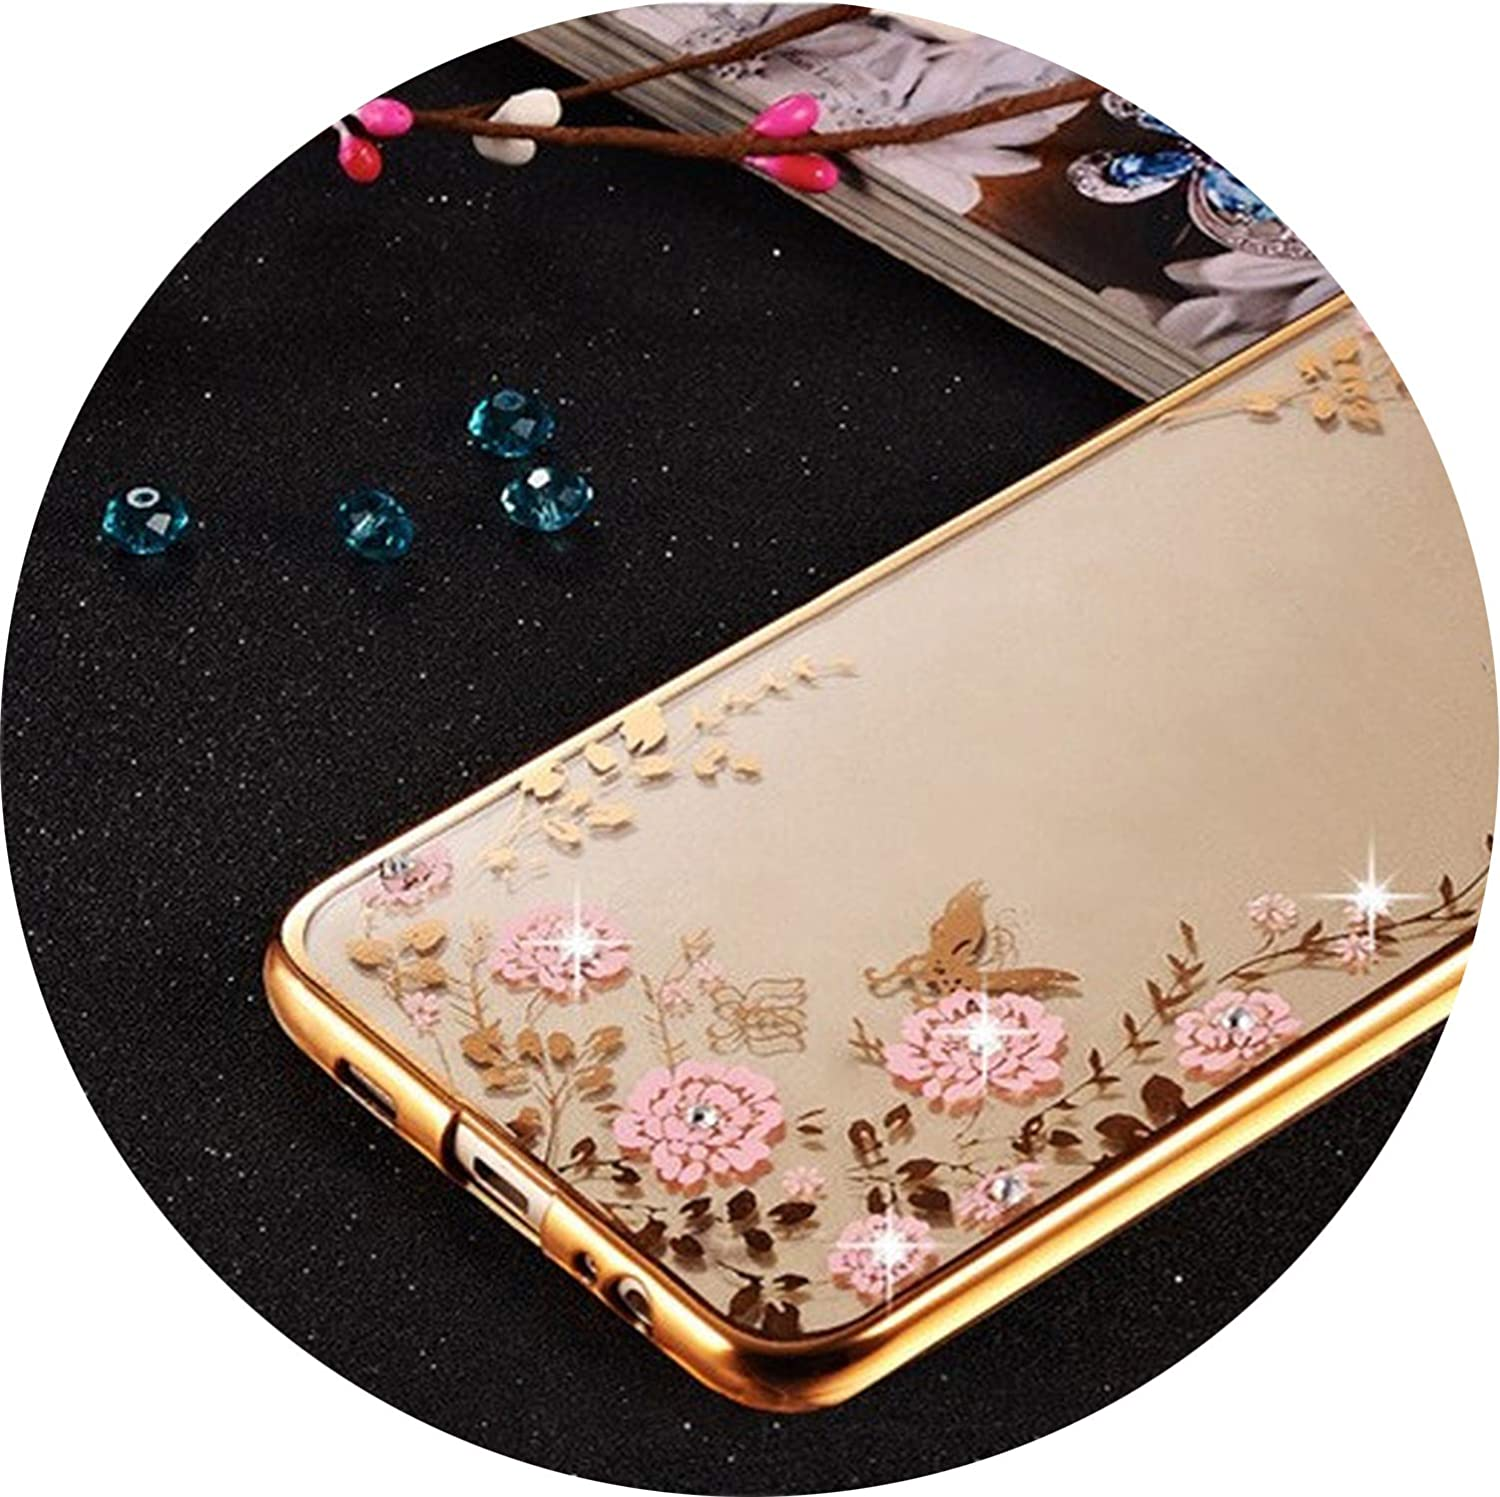 Amazon.com: Bling Diamond Clear Case for Samsung Galaxy J3 ...